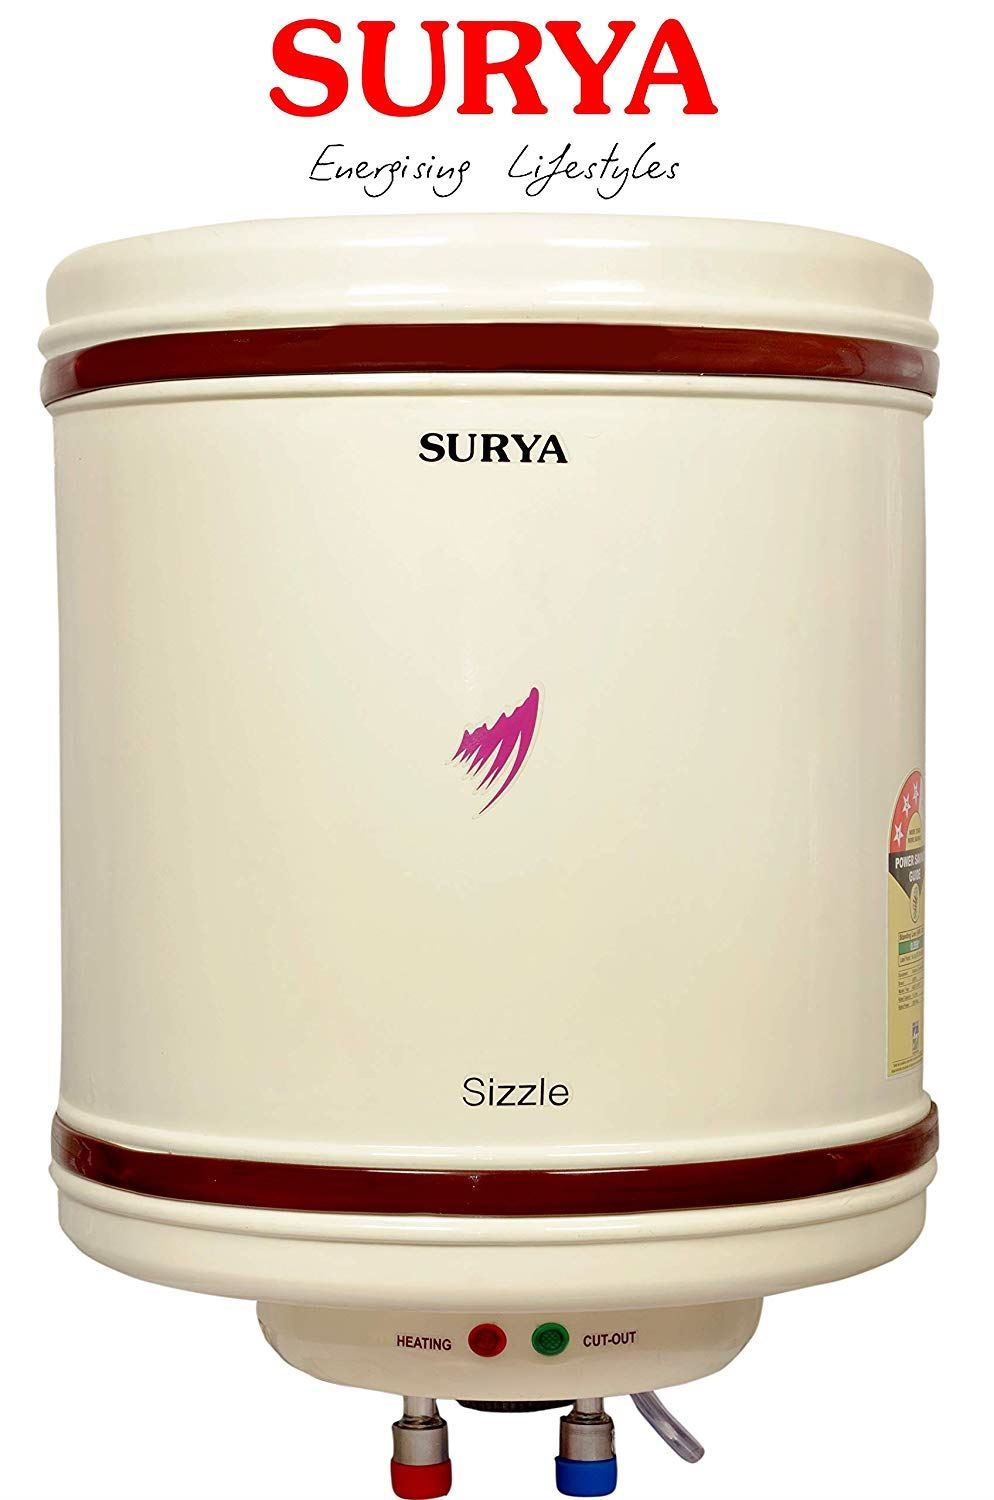 Surya Sizzle Water Heater 15 Ltr